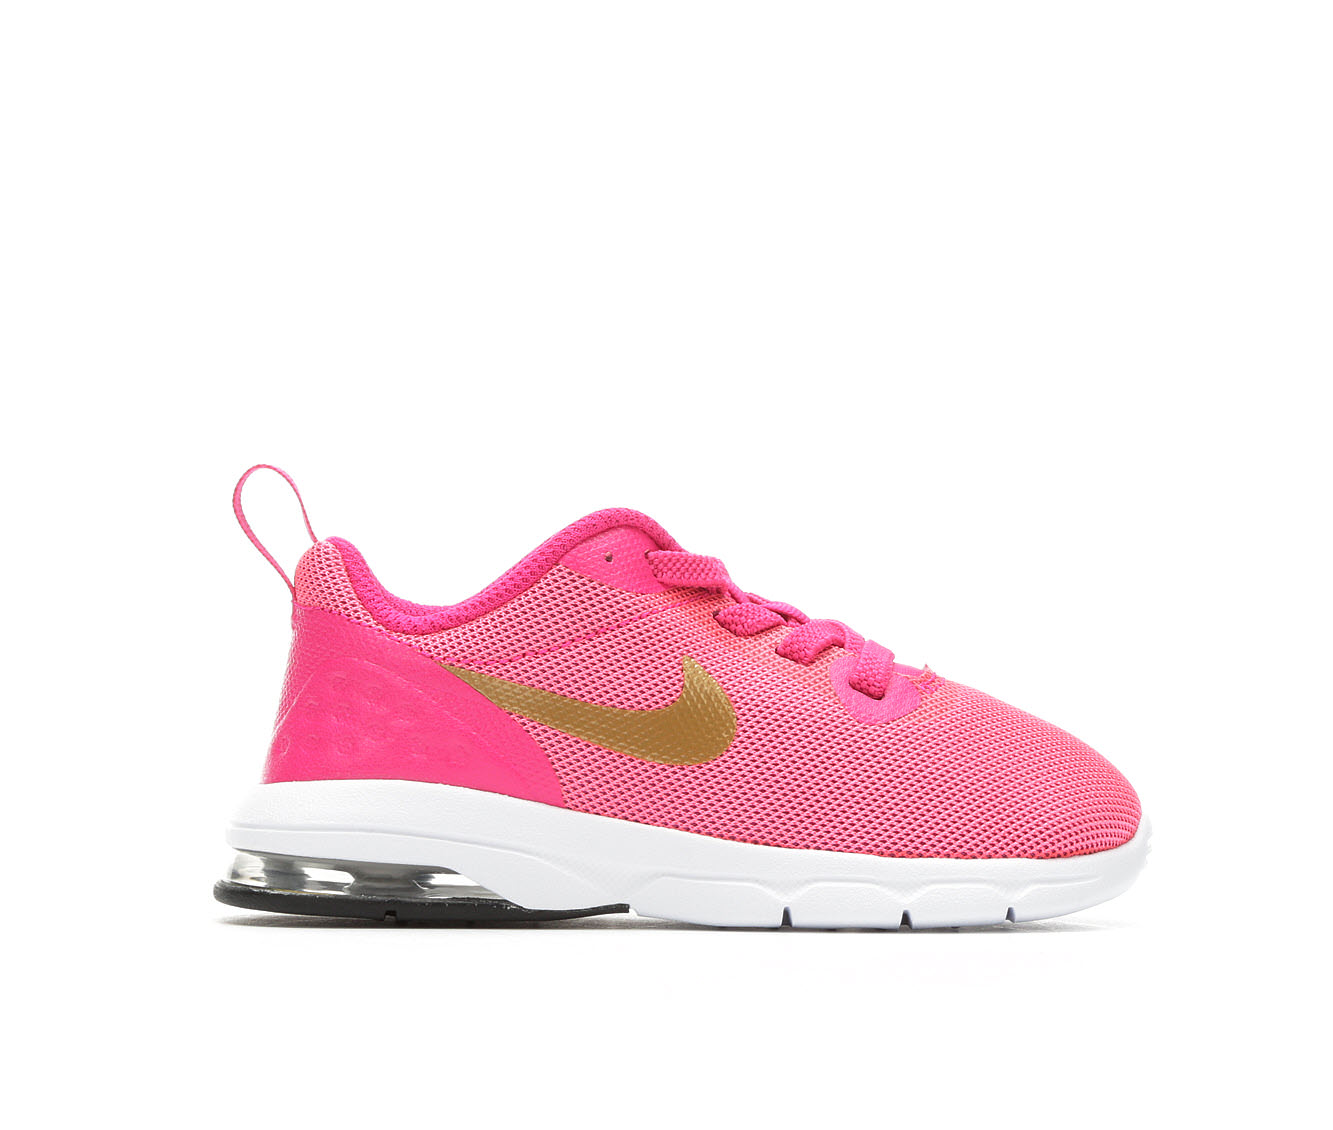 Girls' Nike Infant Air Max Motion Low Sneakers (Pink)